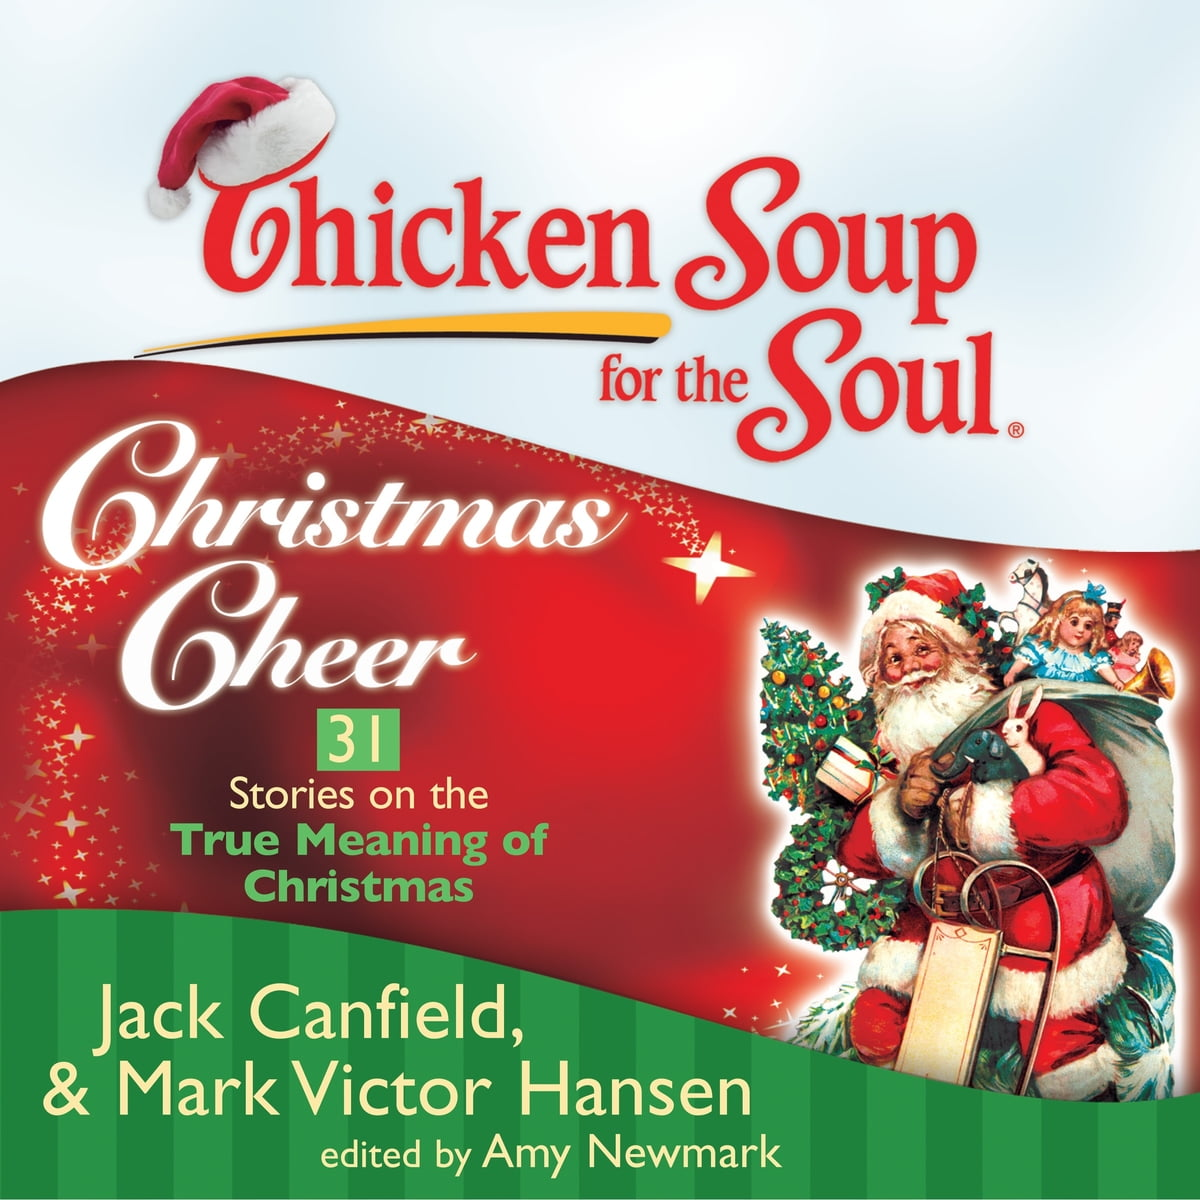 Chicken Soup for the Soul: Christmas Cheer - 31 Stories on the True Meaning  of Christmas Audiobook by Jack Canfield - 9781441882141 | Rakuten Kobo